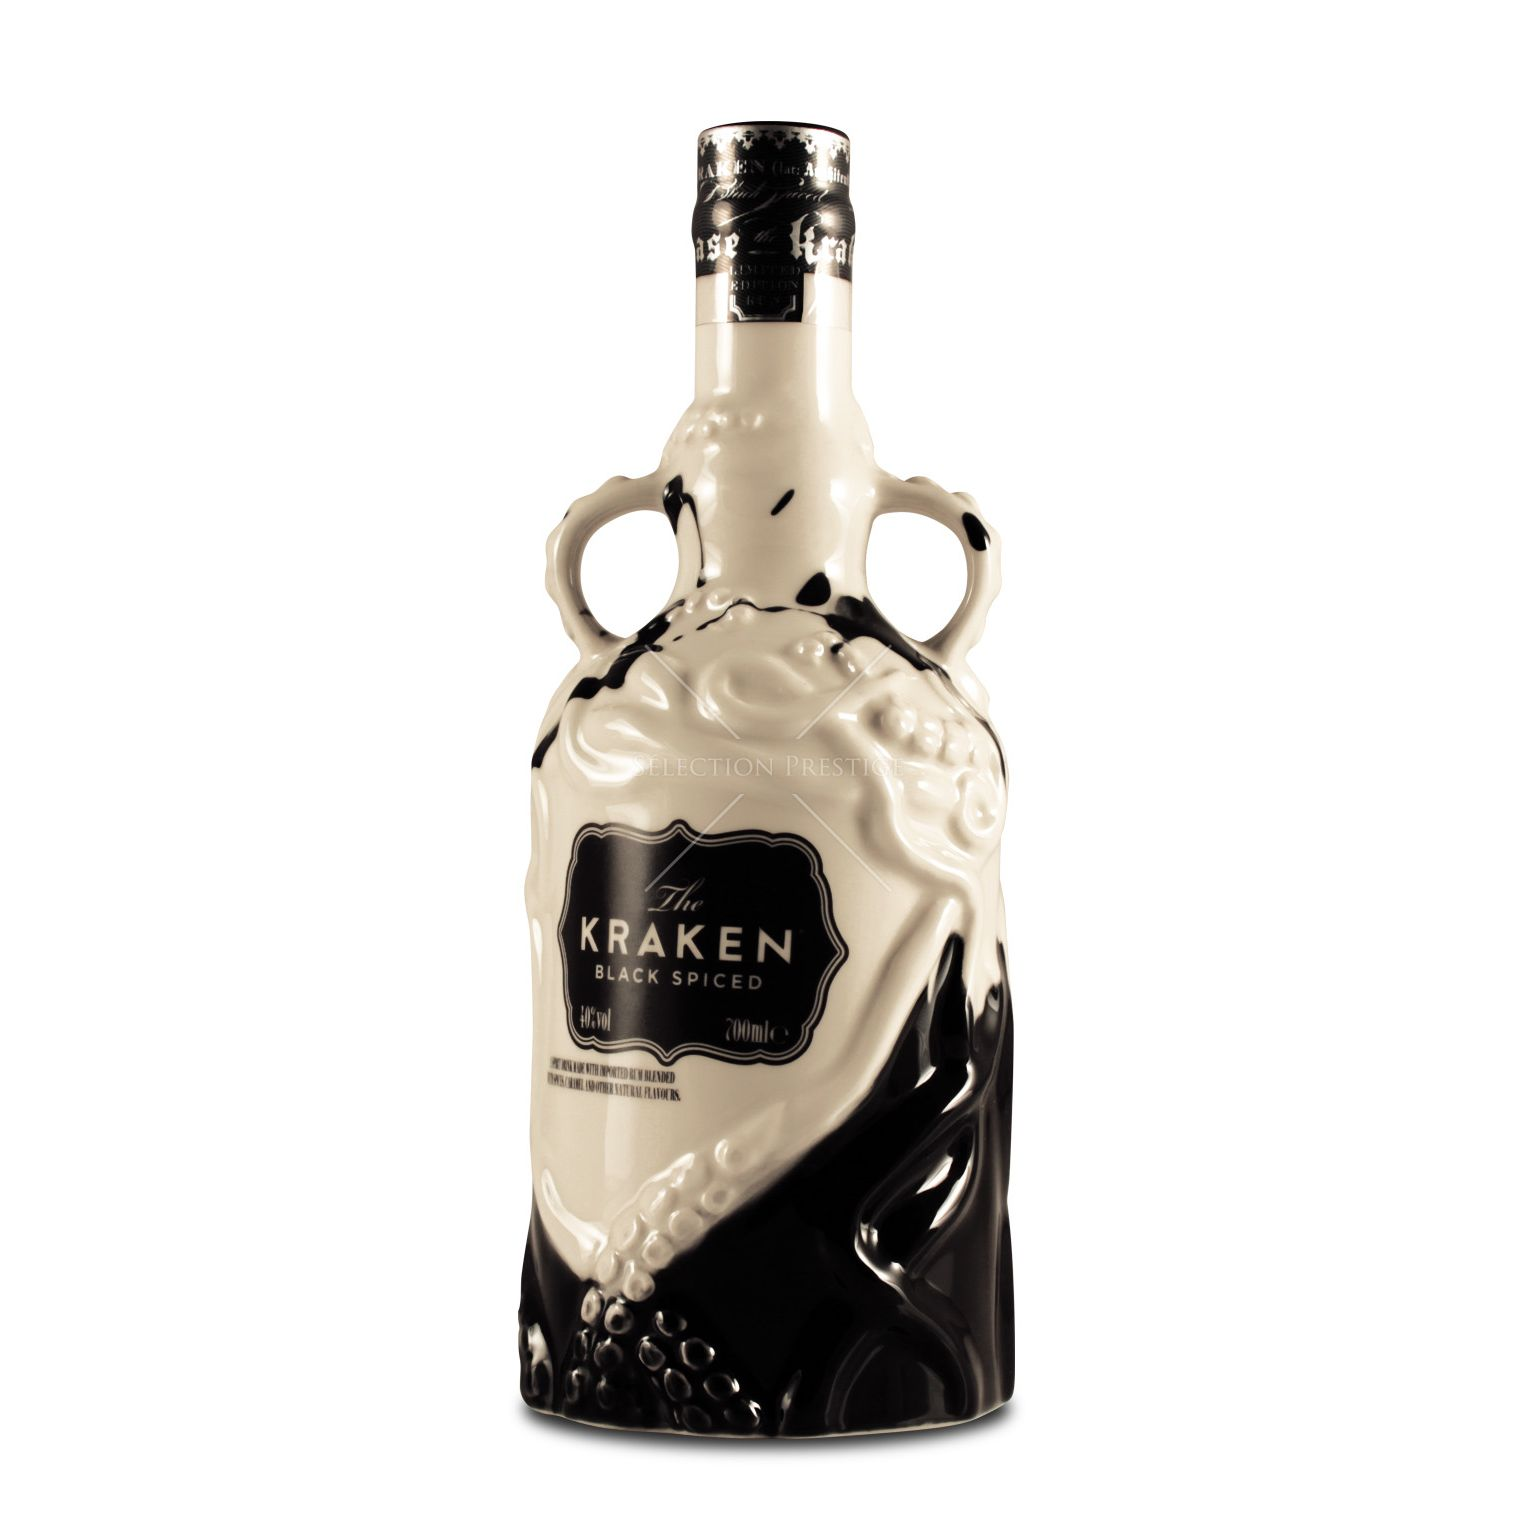 The kraken black spiced rum limited black white ceramic - Kraken rum pictures ...